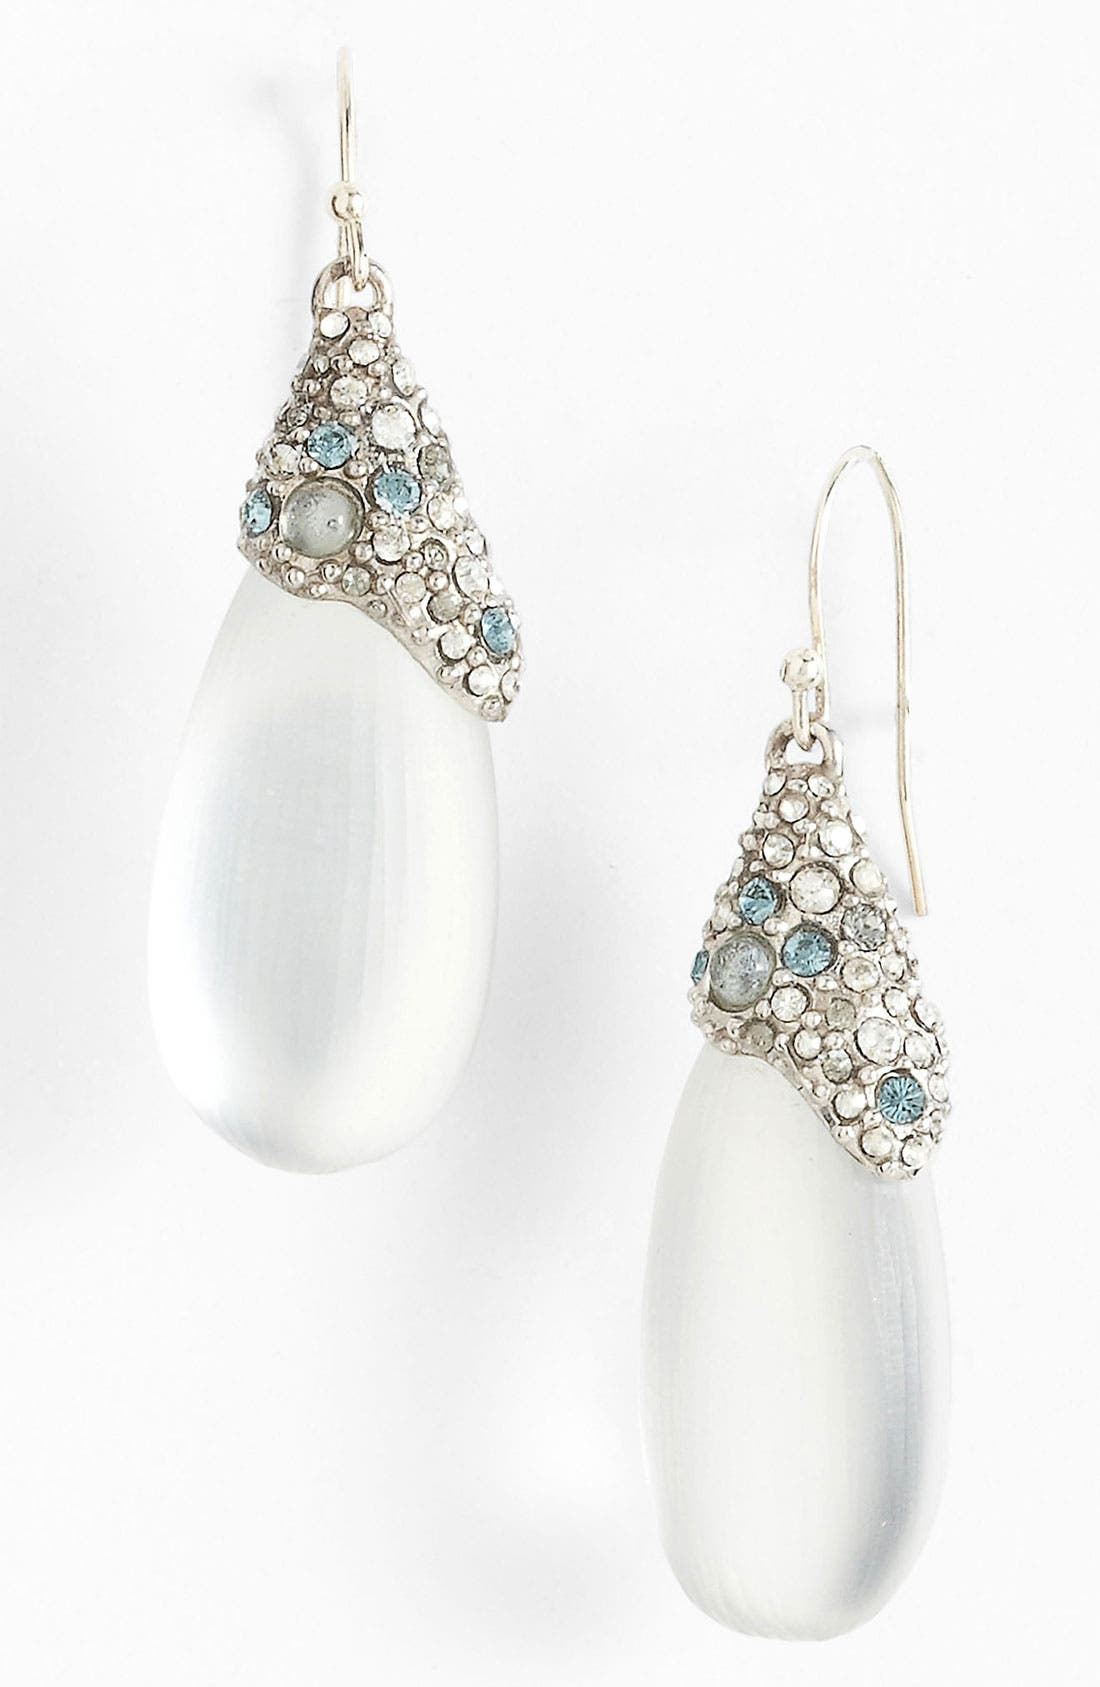 Alternate Image 1 Selected - Alexis Bittar 'Modular' Encrusted Teardrop Earrings